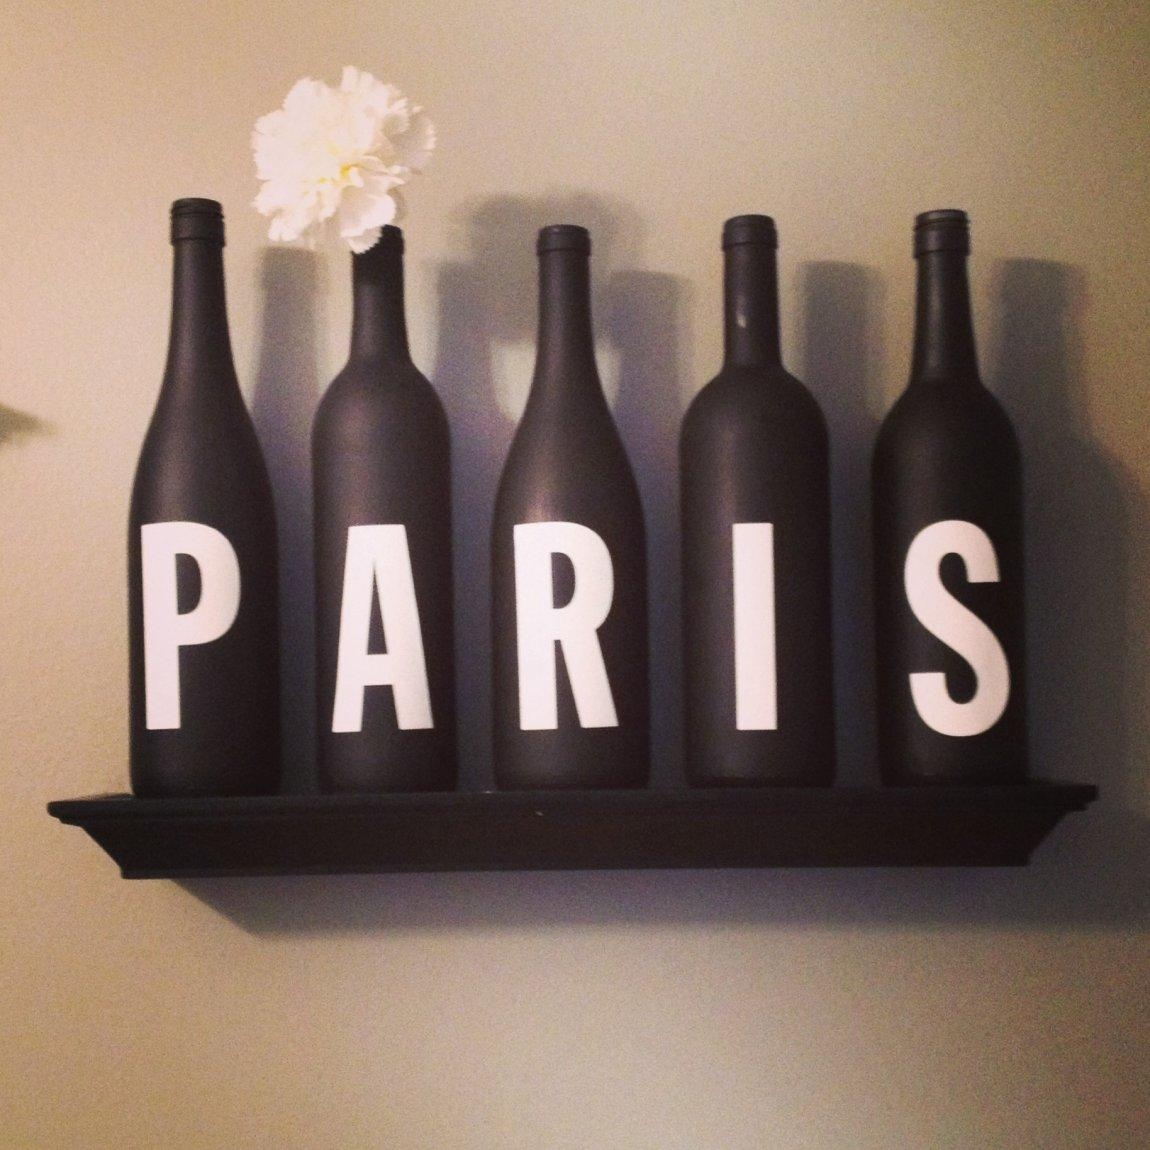 20 ideas of paris themed stickers wall art ideas for Room decor ideas paris